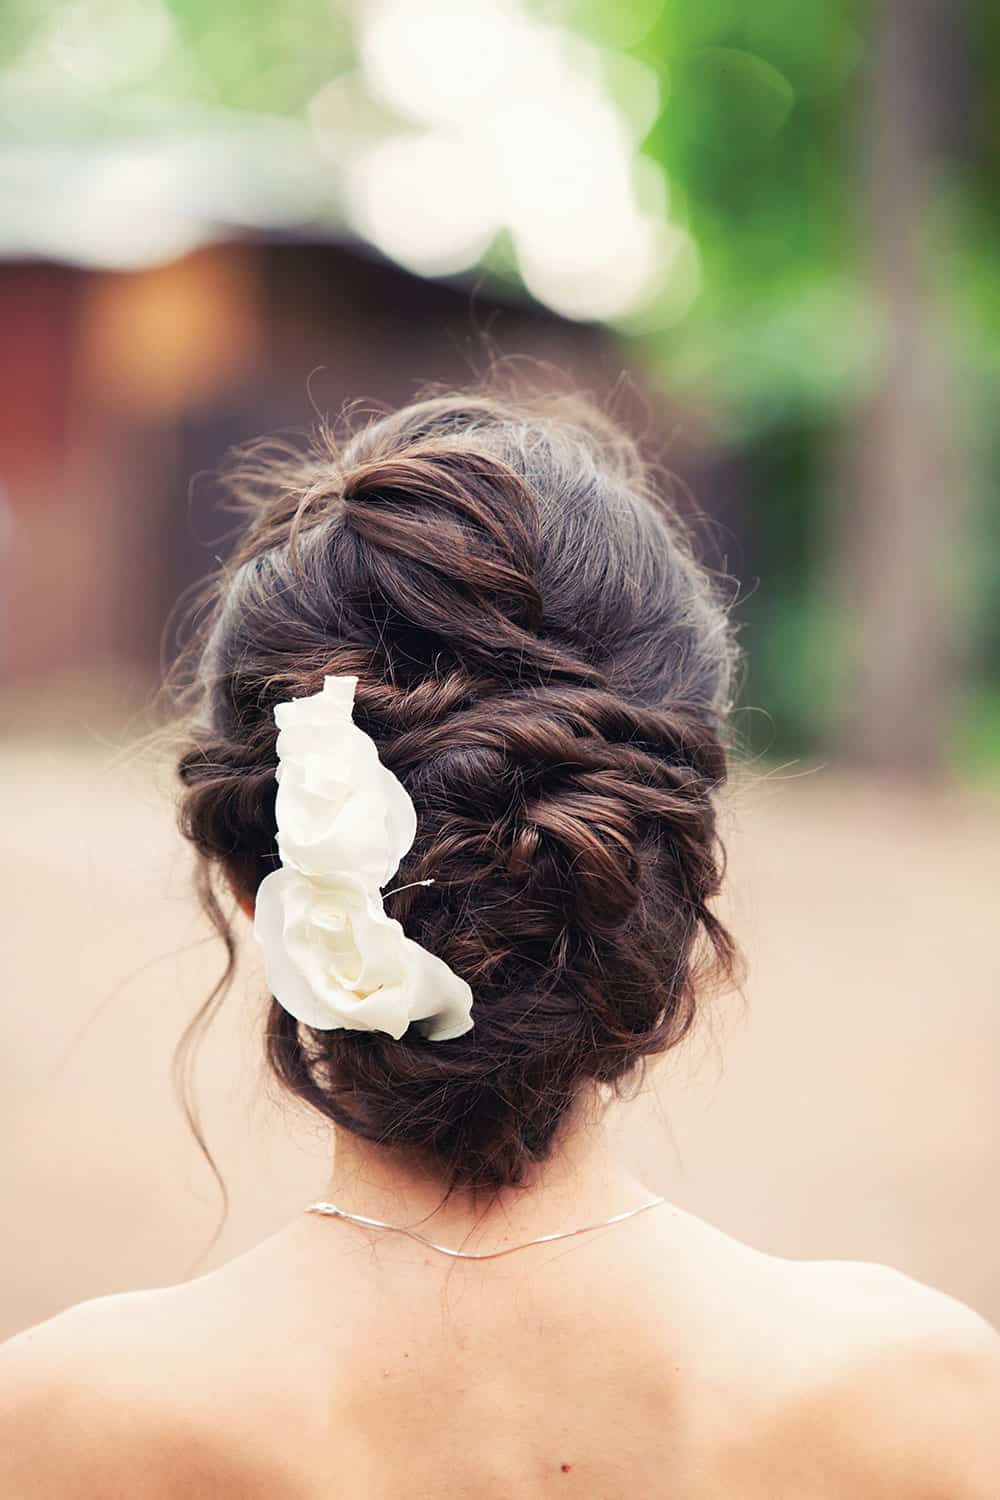 Spring bridal hair up-do braid style with flower.